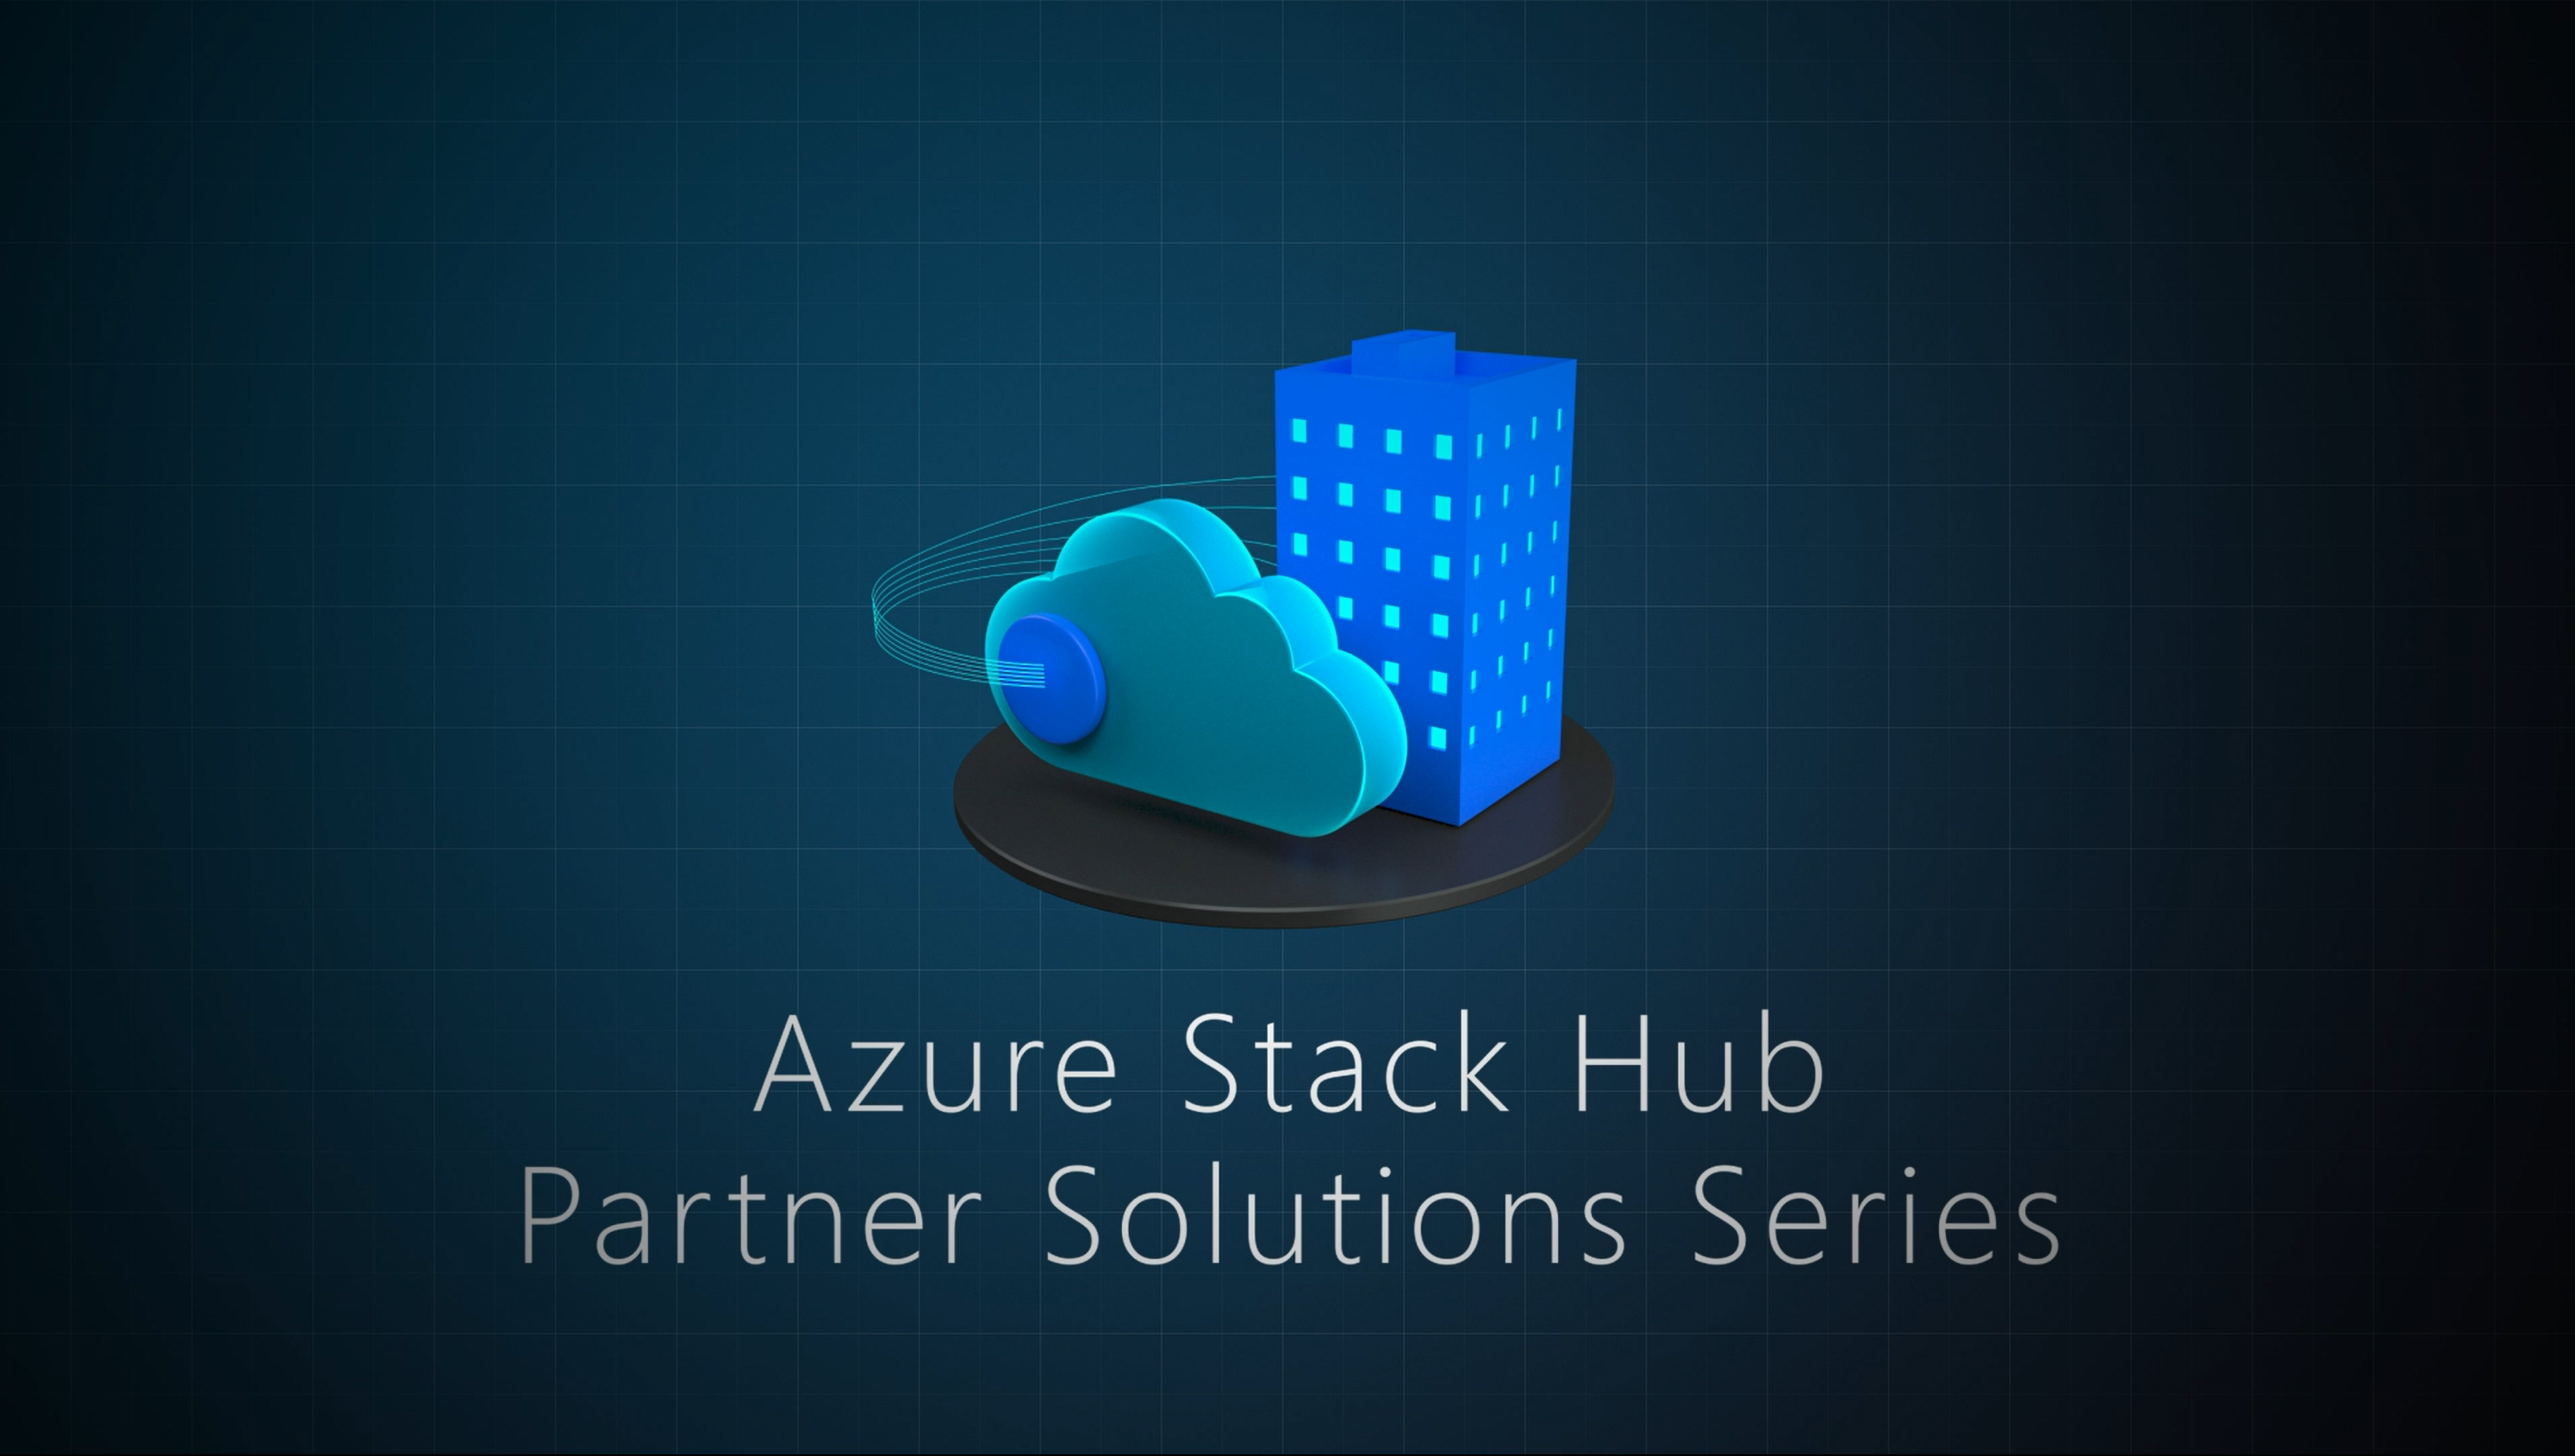 Check out the Azure Stack Hub Partner Solution Video Series